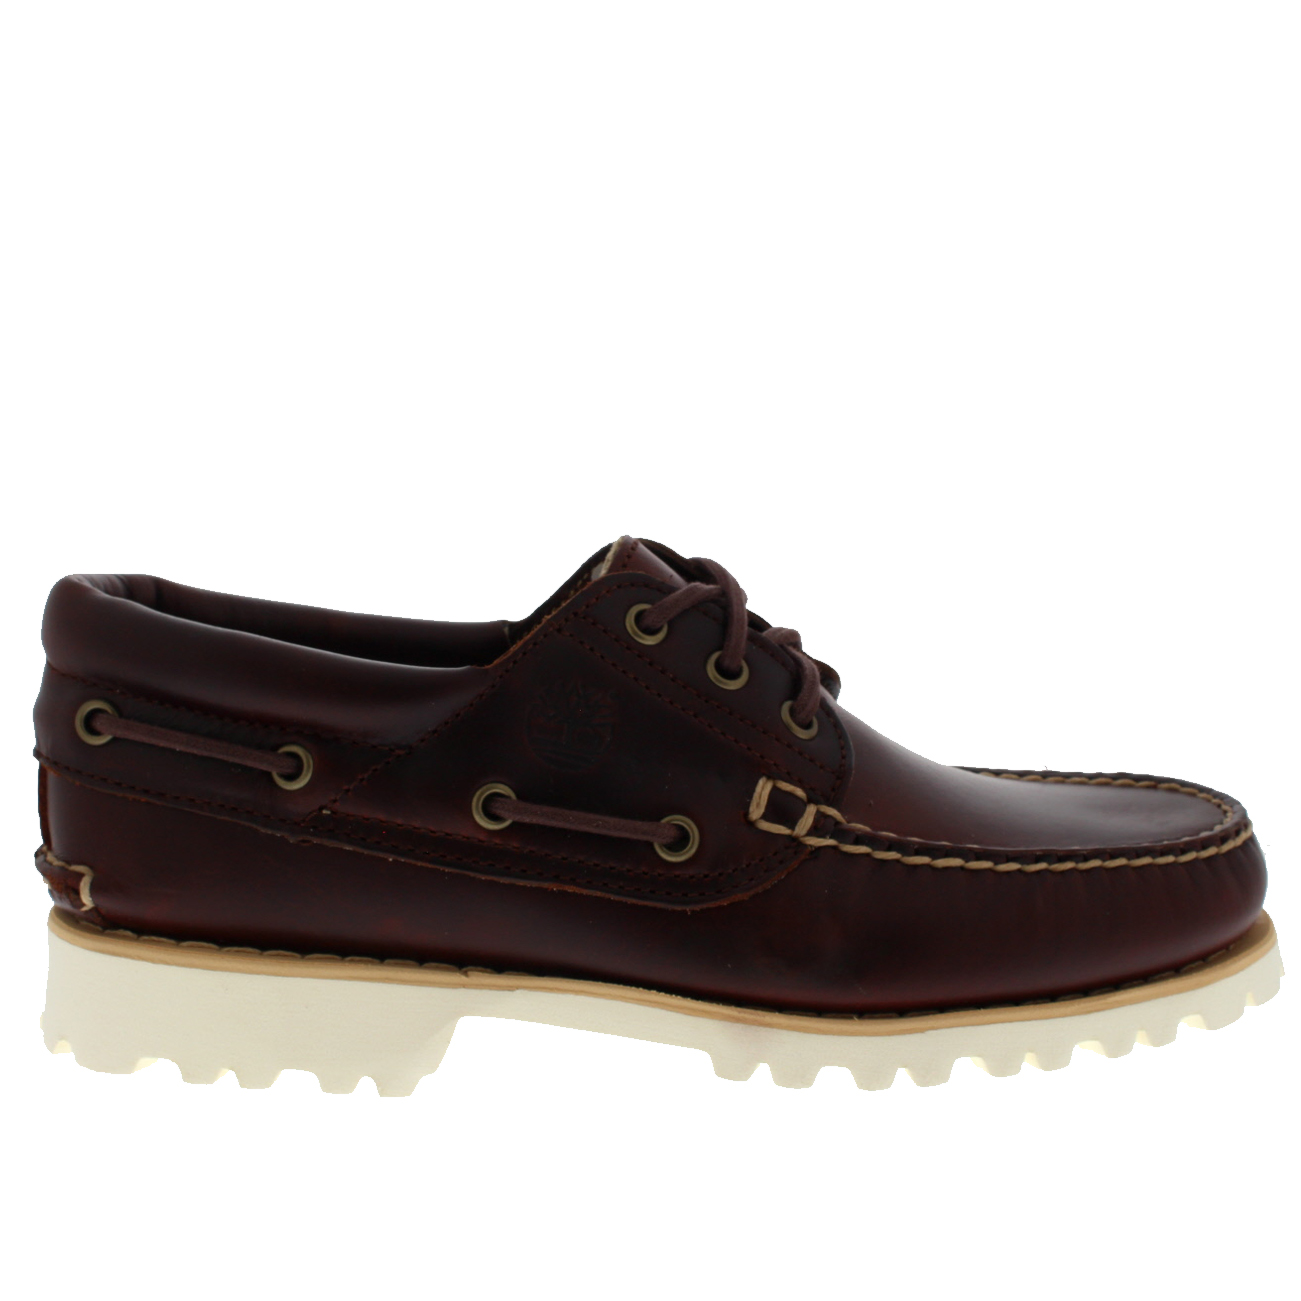 edacdc8d01a Details about Mens Timberland Chilmark 3 Eye Hand Shoes Leather Smart  Casual Moccasins UK 7-12